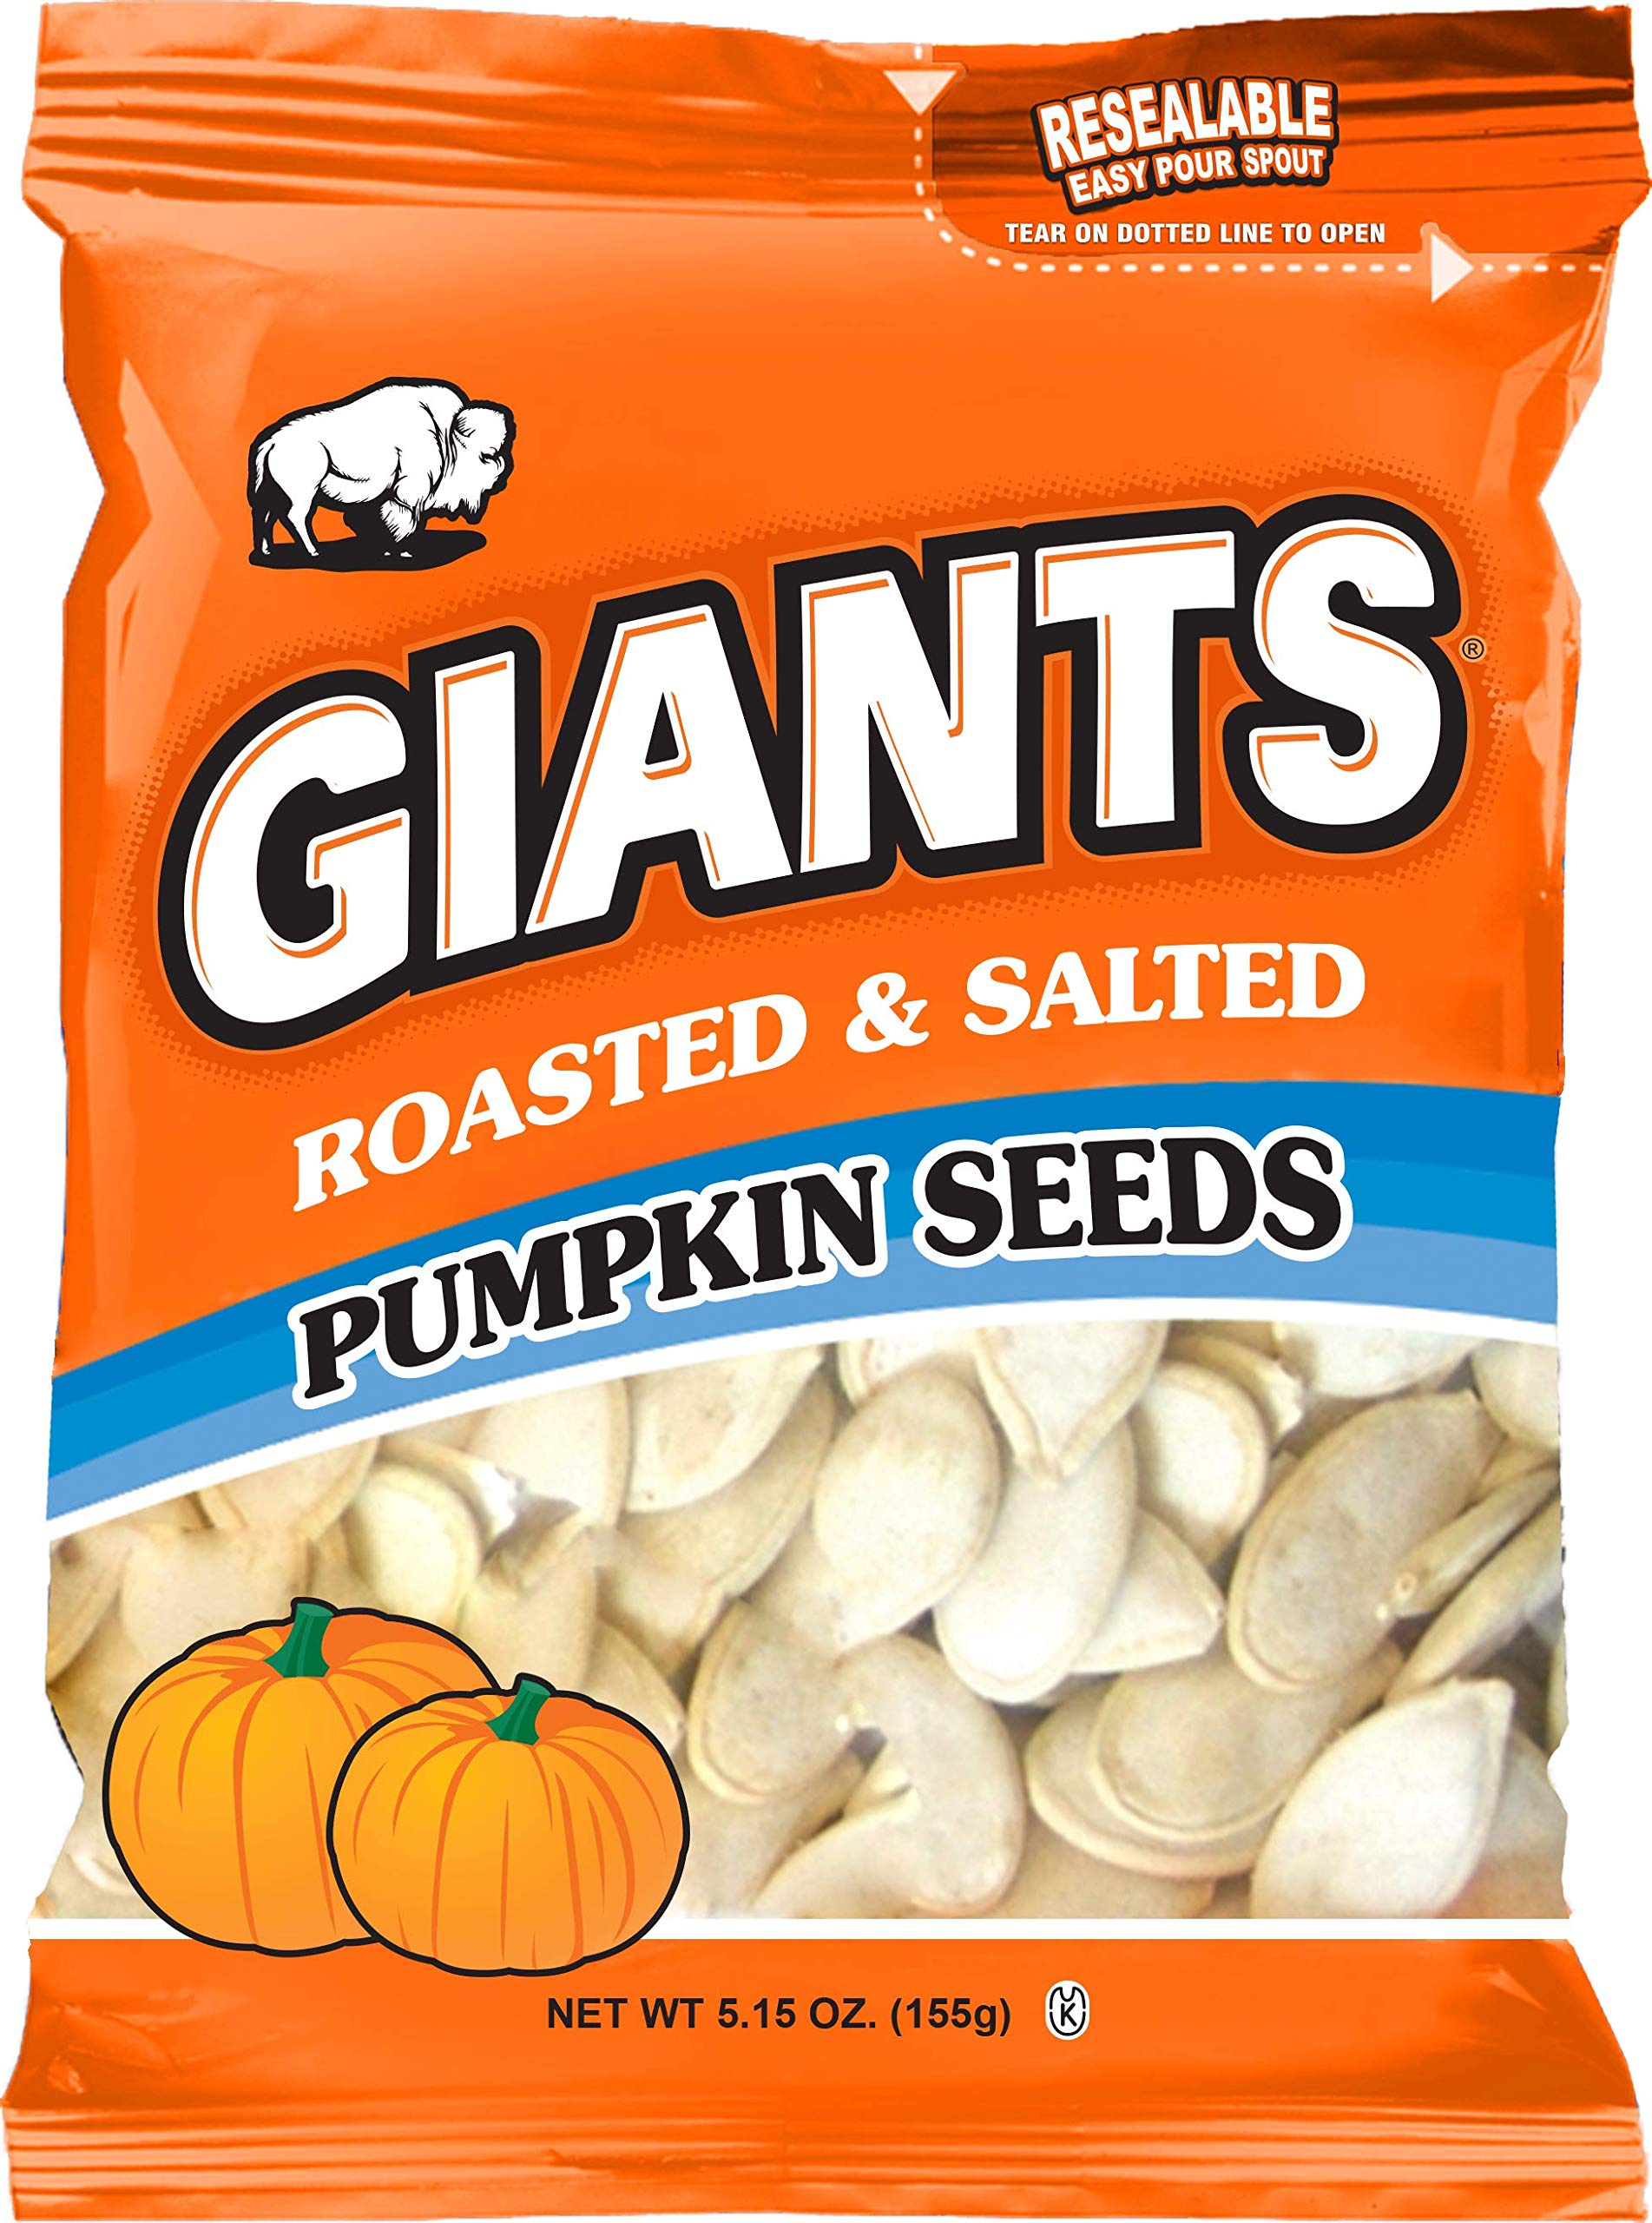 GIANTS Pumpkin Seeds, Roasted and Salted 5.15 oz. (Package of 12)